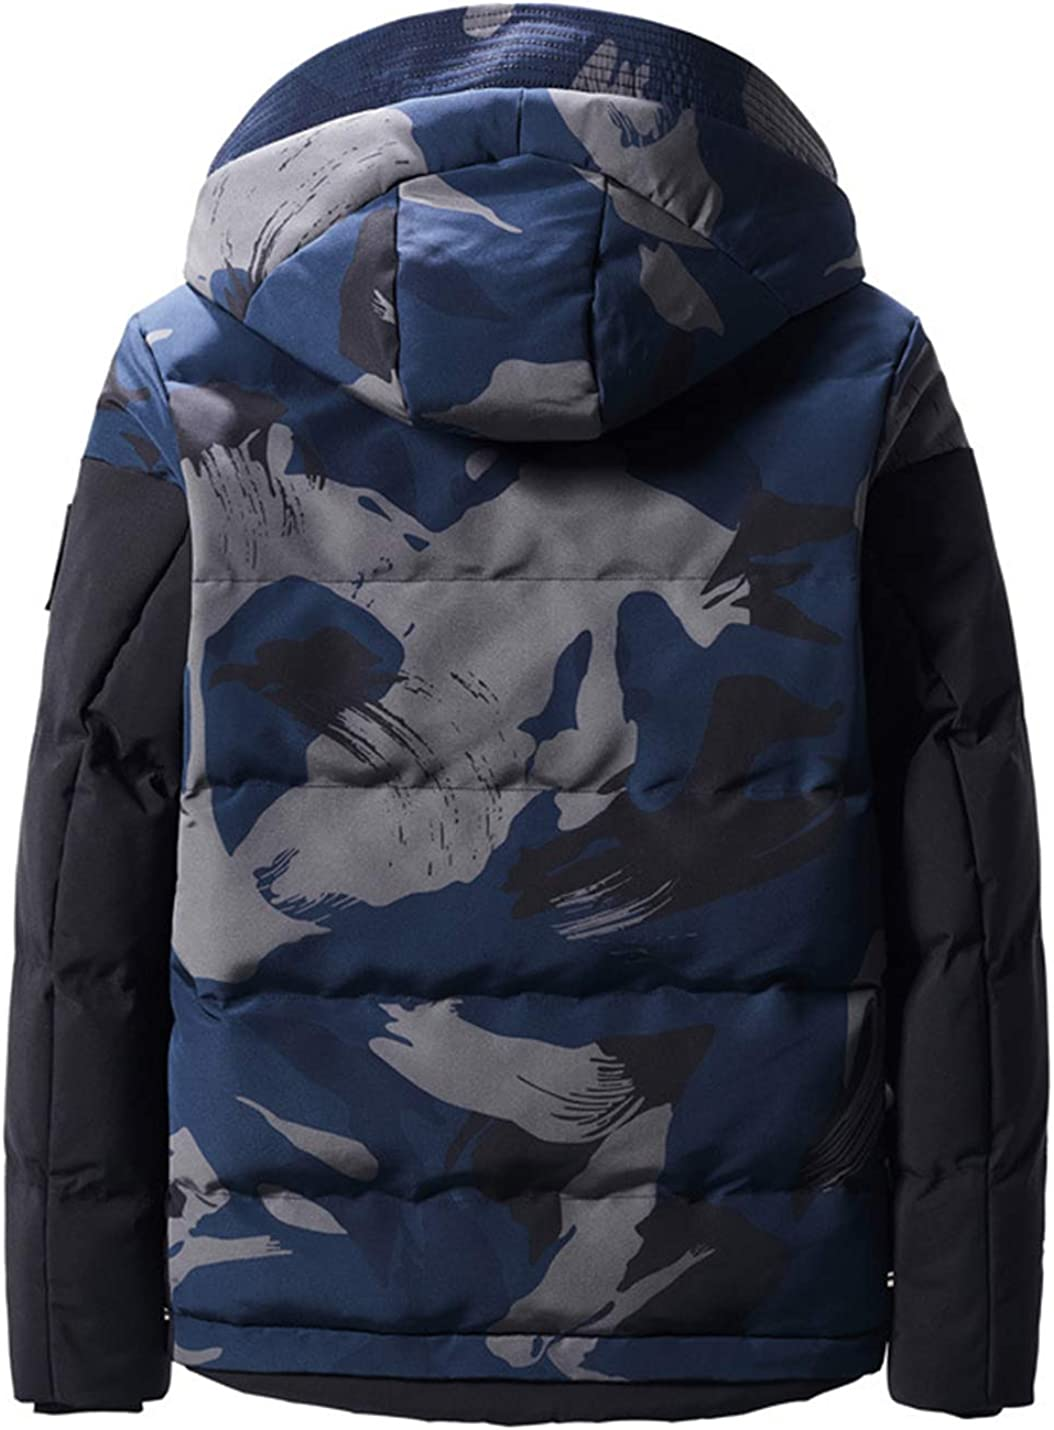 Uaneo Mens Winter Casual Warm Camouflage Full Zip Hooded Puffy Coat Jacket